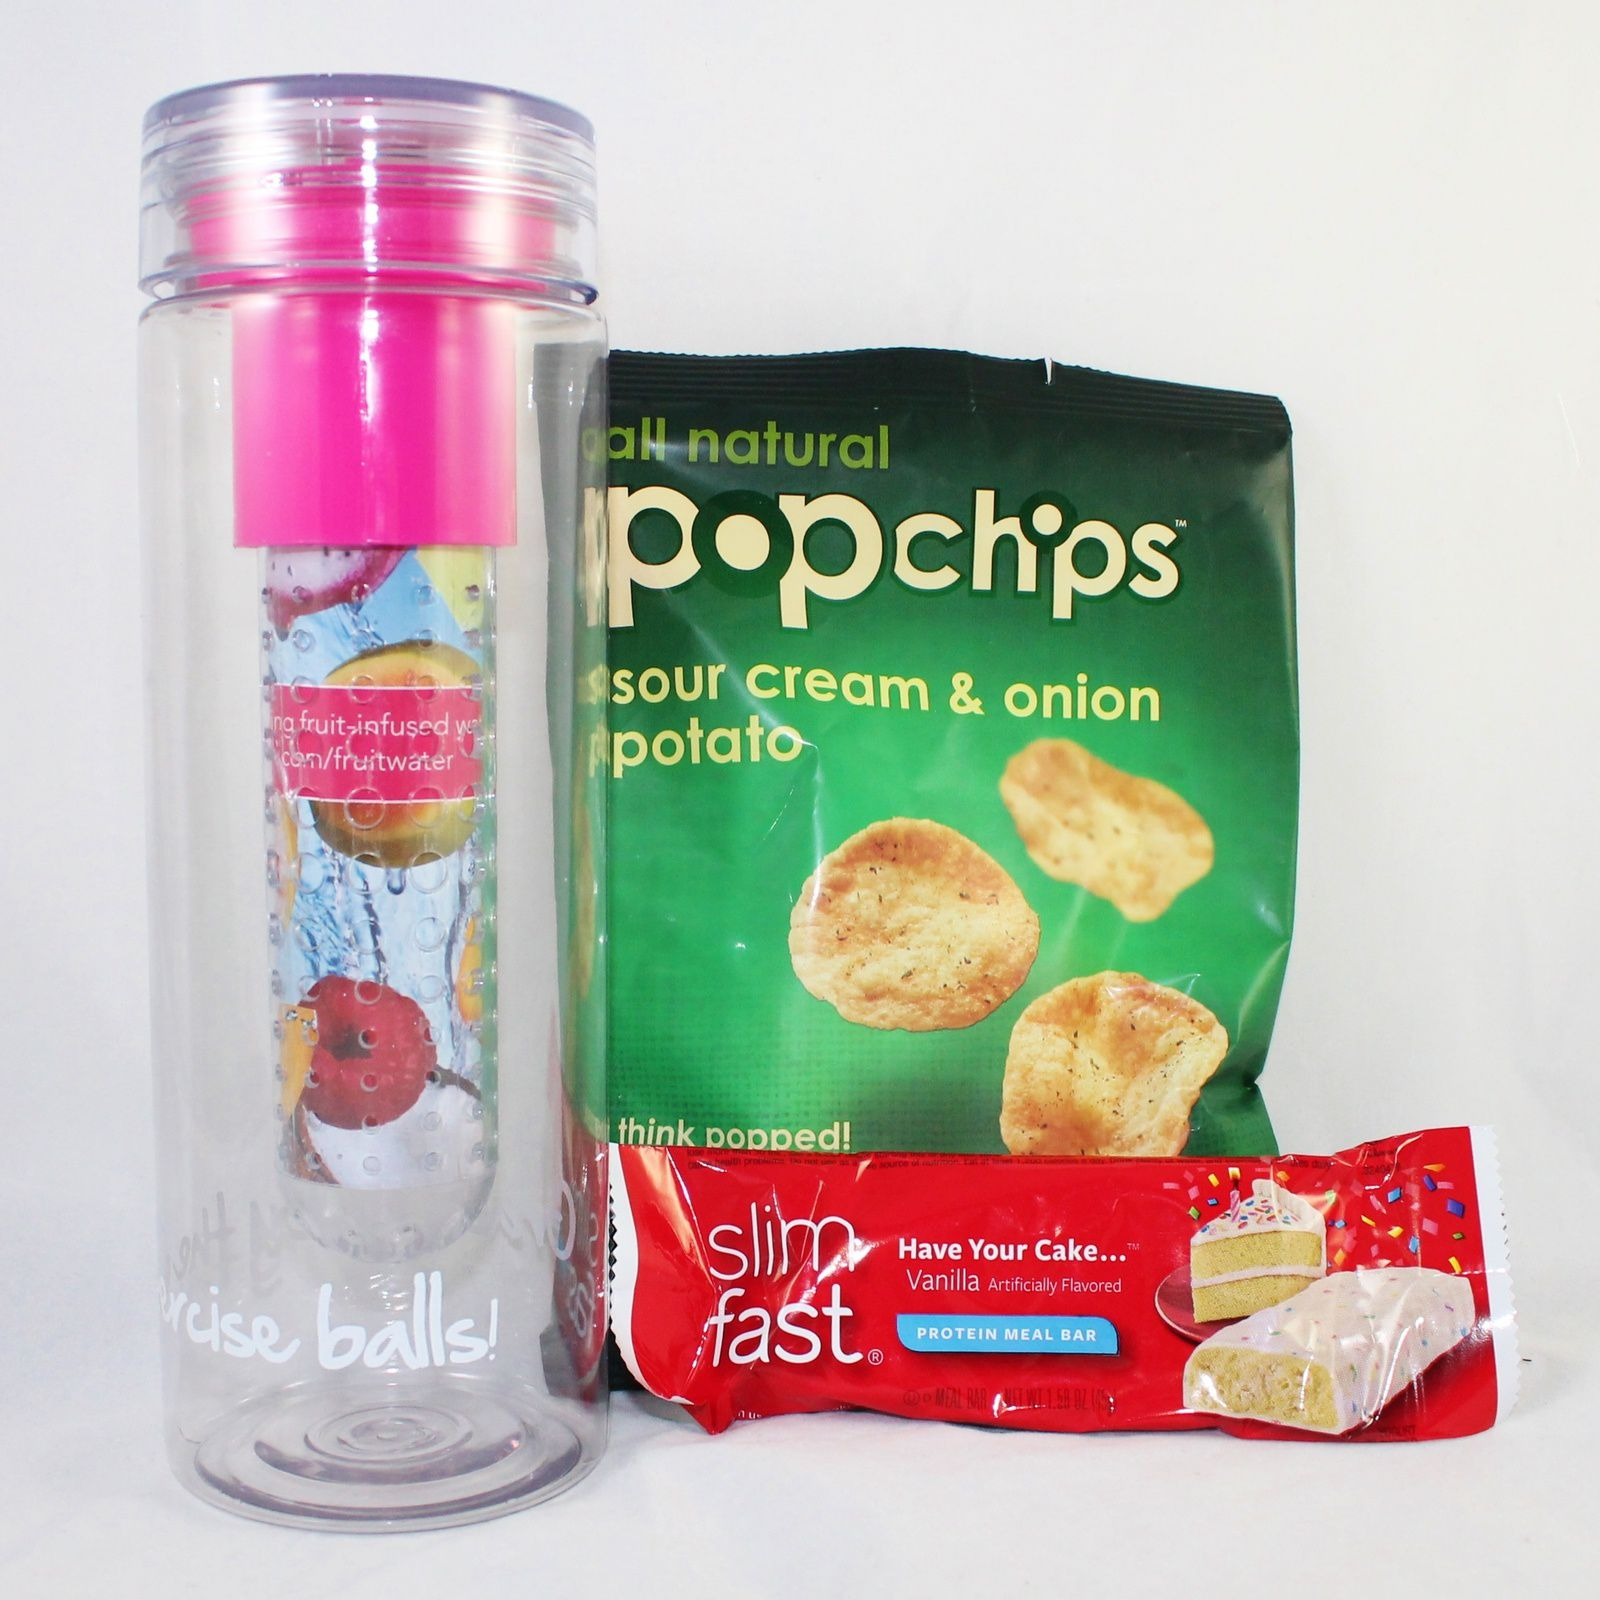 FabFitFun Water Infuser BPA-free Water Bottle ($15), POPchips ($1), Slimfast Have Your Cake Meal Bar ($1)